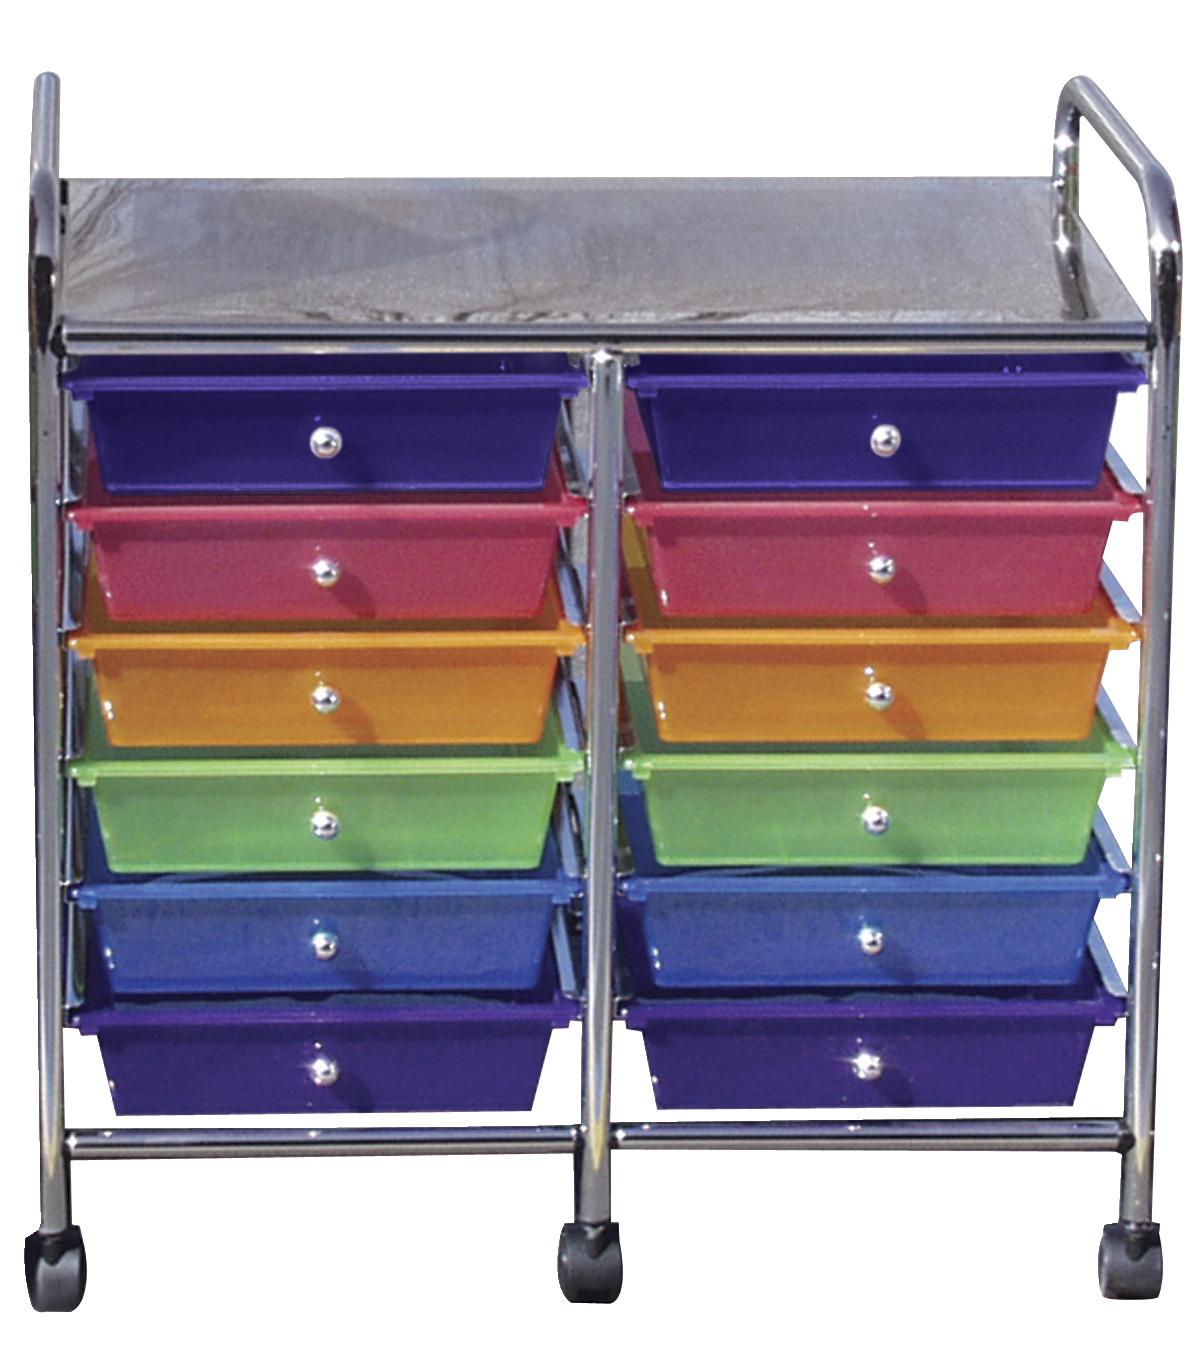 Mobile Organizer 12 Drawers 25 X 26 15 1 4 Inches